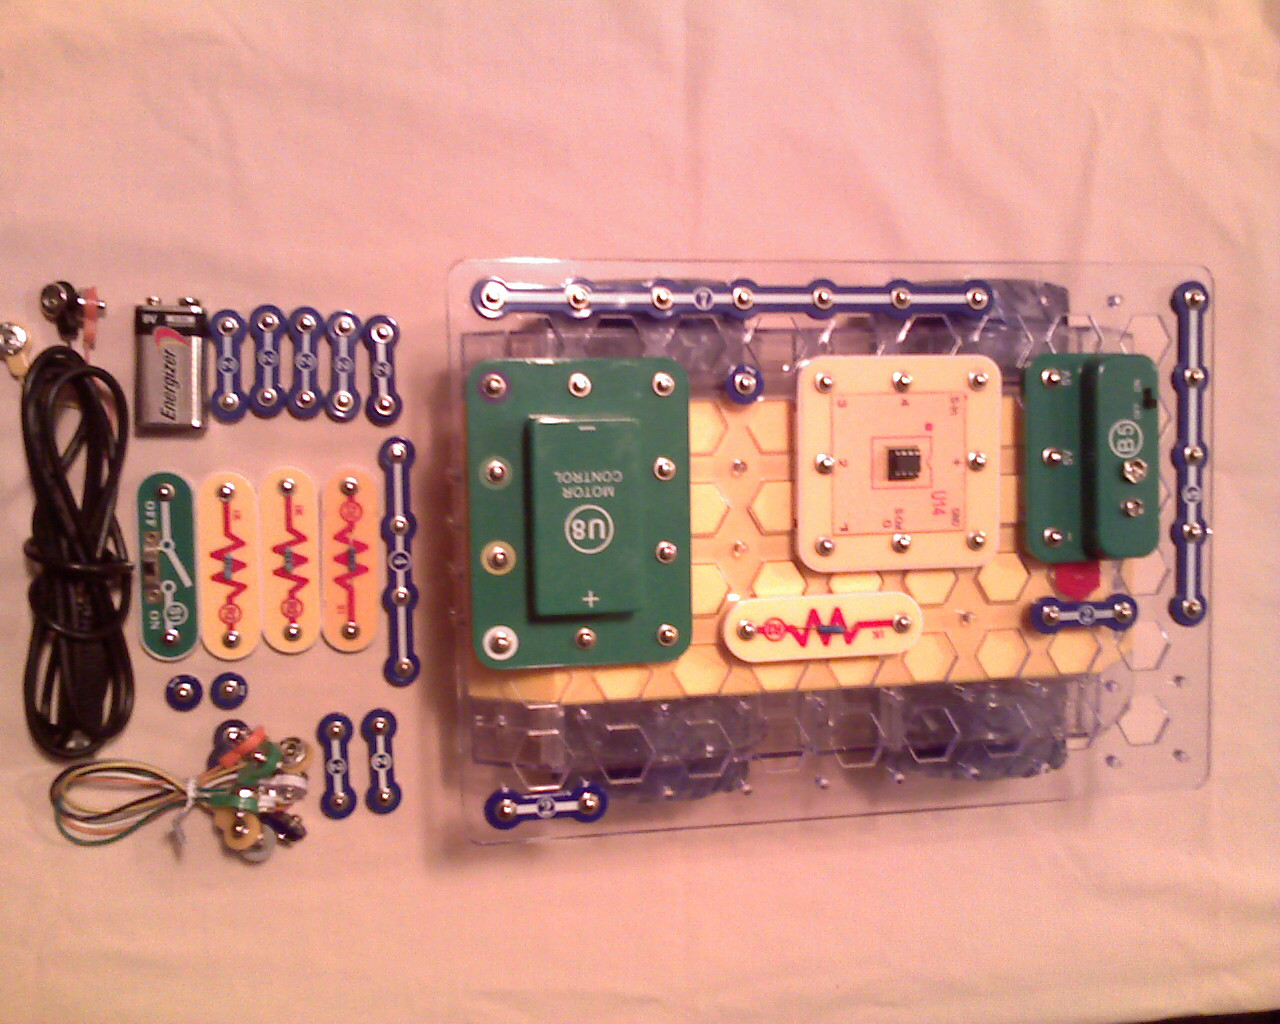 Picture of Build the Robot Circuit